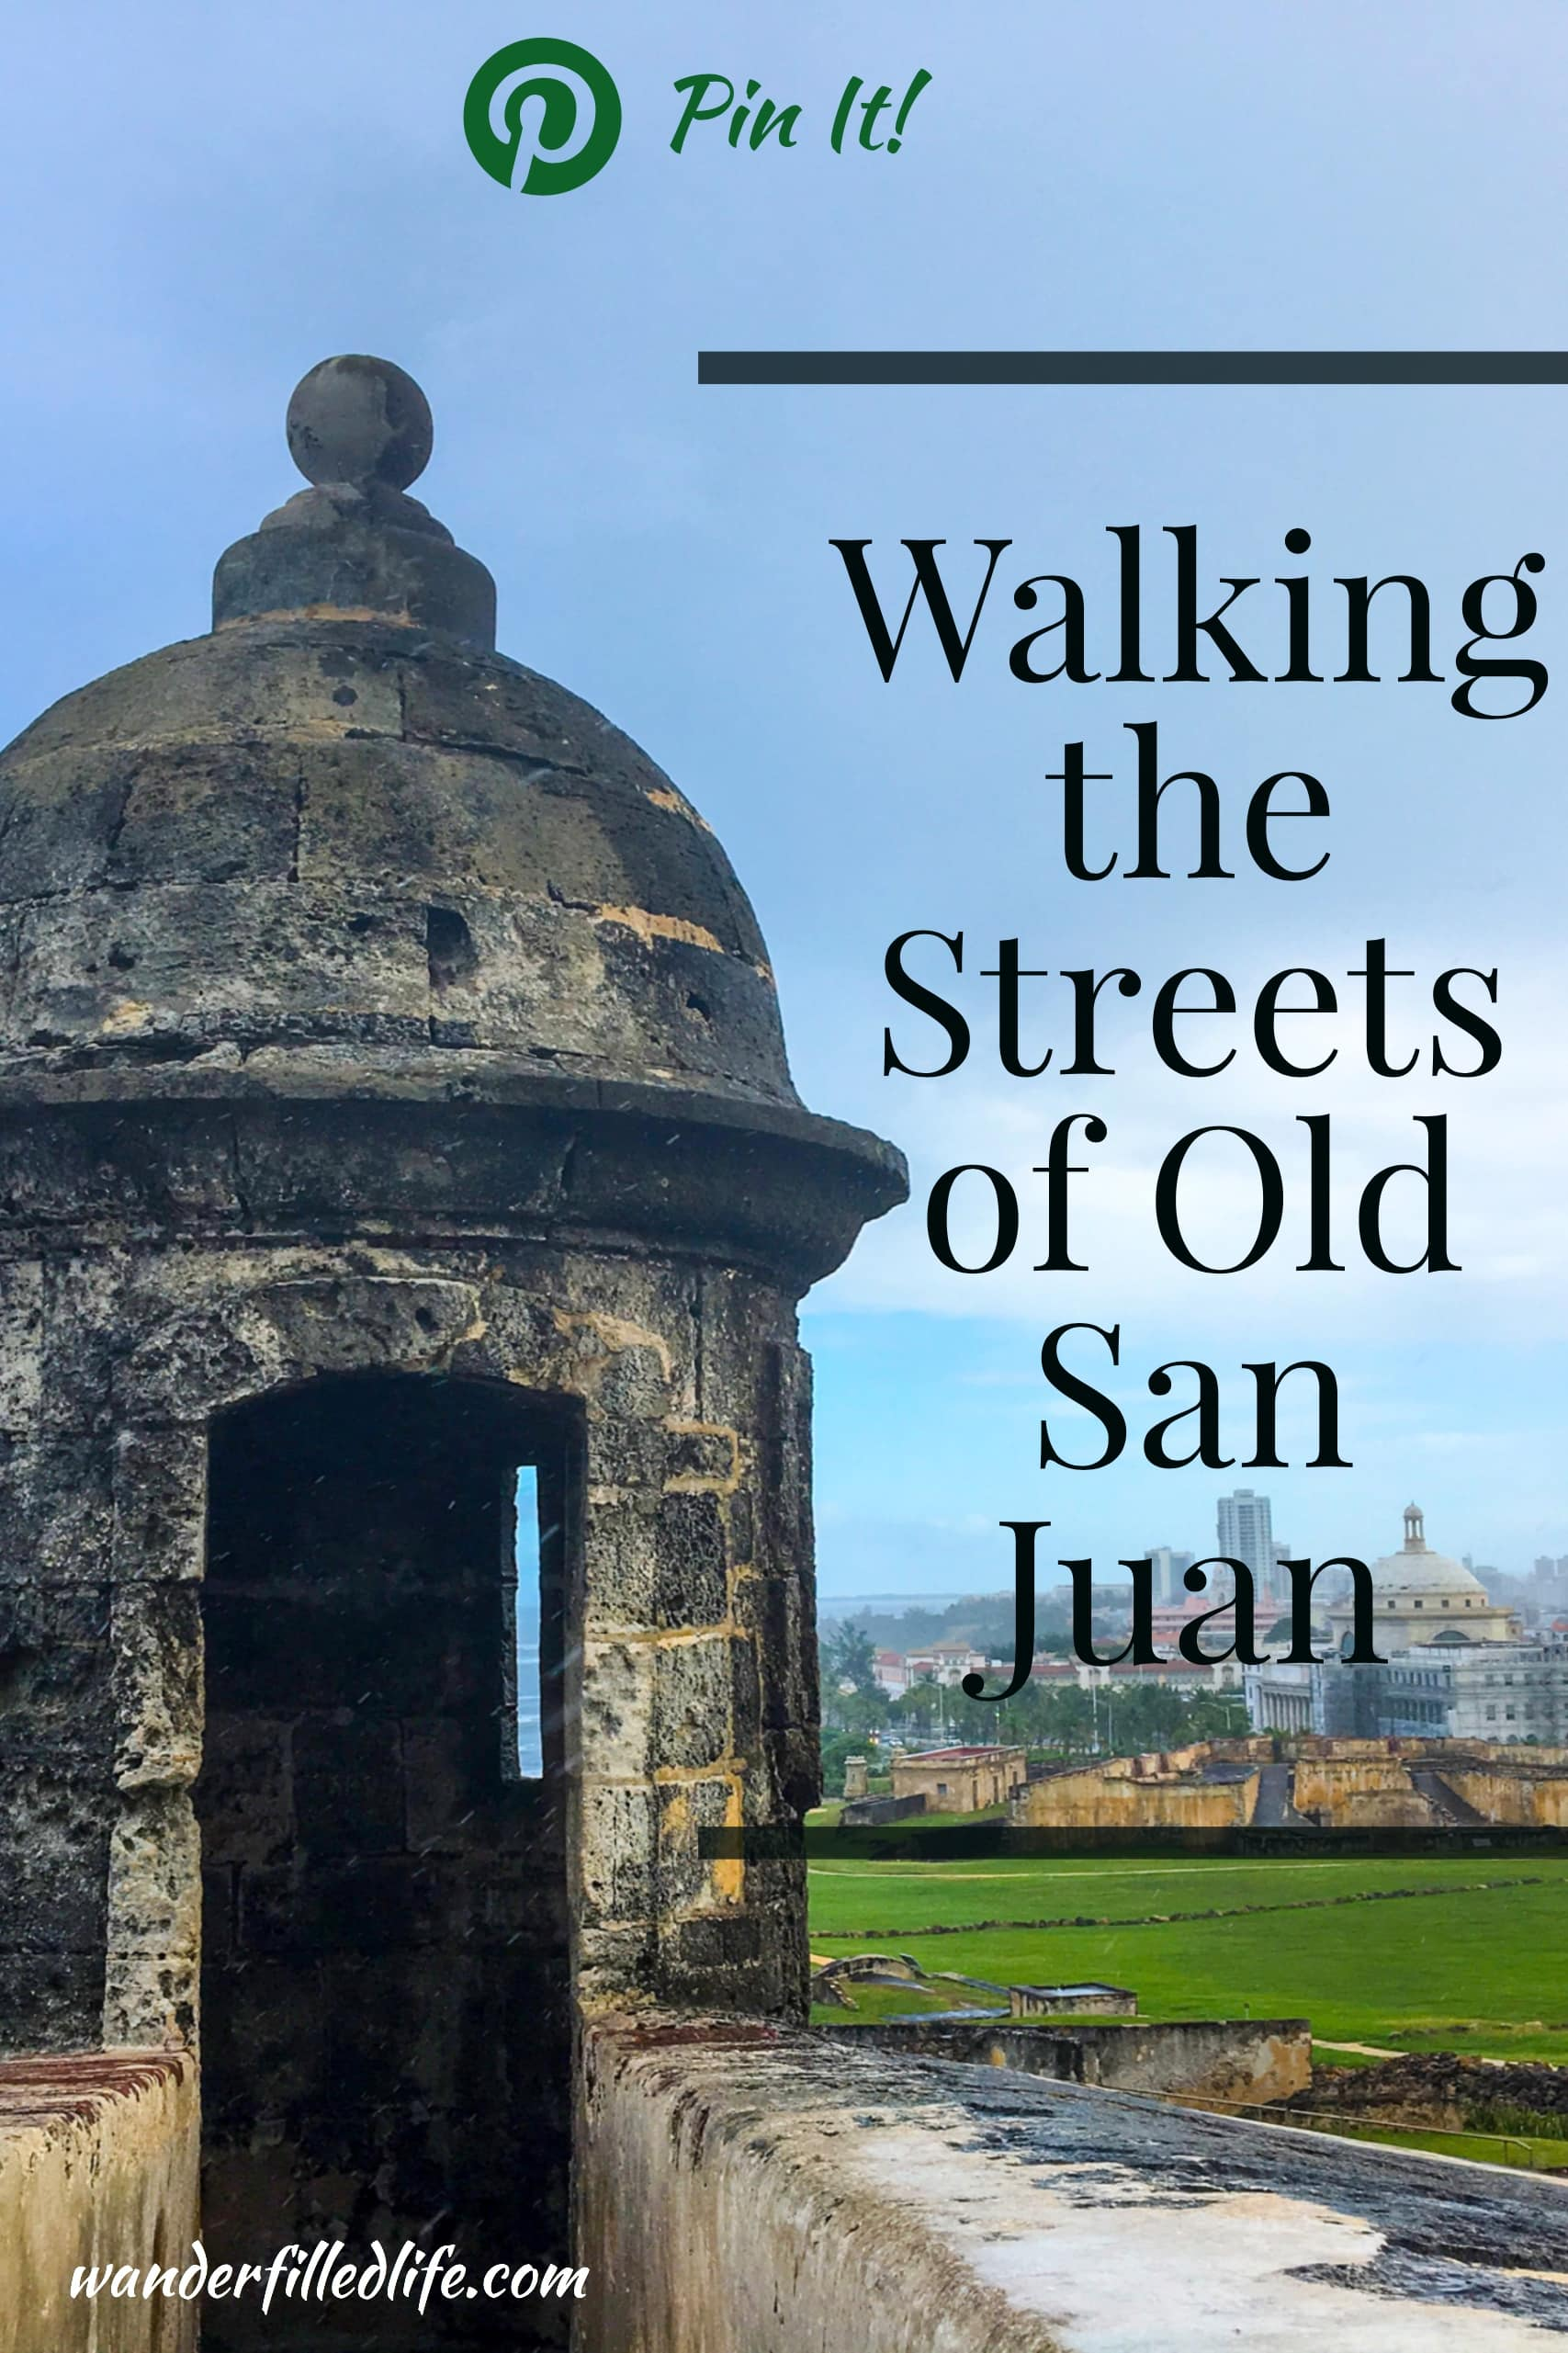 Walking the streets of Old San Juan, our final stop of our southern Caribbean cruise, and seeing the San Juan National Historic Site.